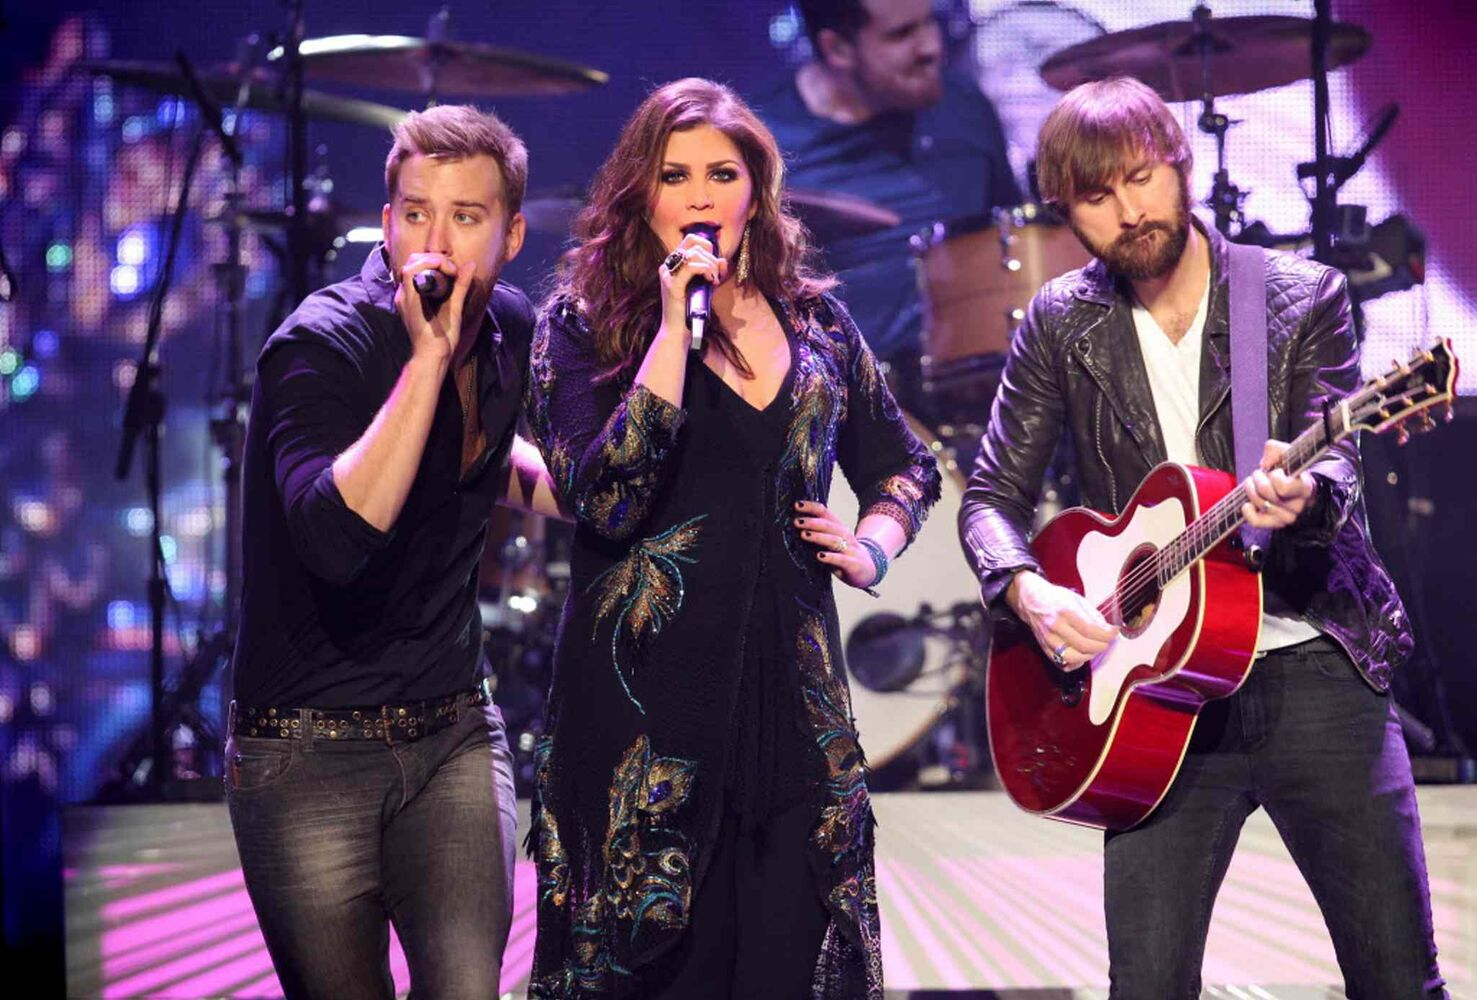 Lady Antebellum performs at the MTS Centre Wednesday evening to an enthusiastic Winnipeg crowd.  (Ruth Bonneville / Winnipeg Free Press)